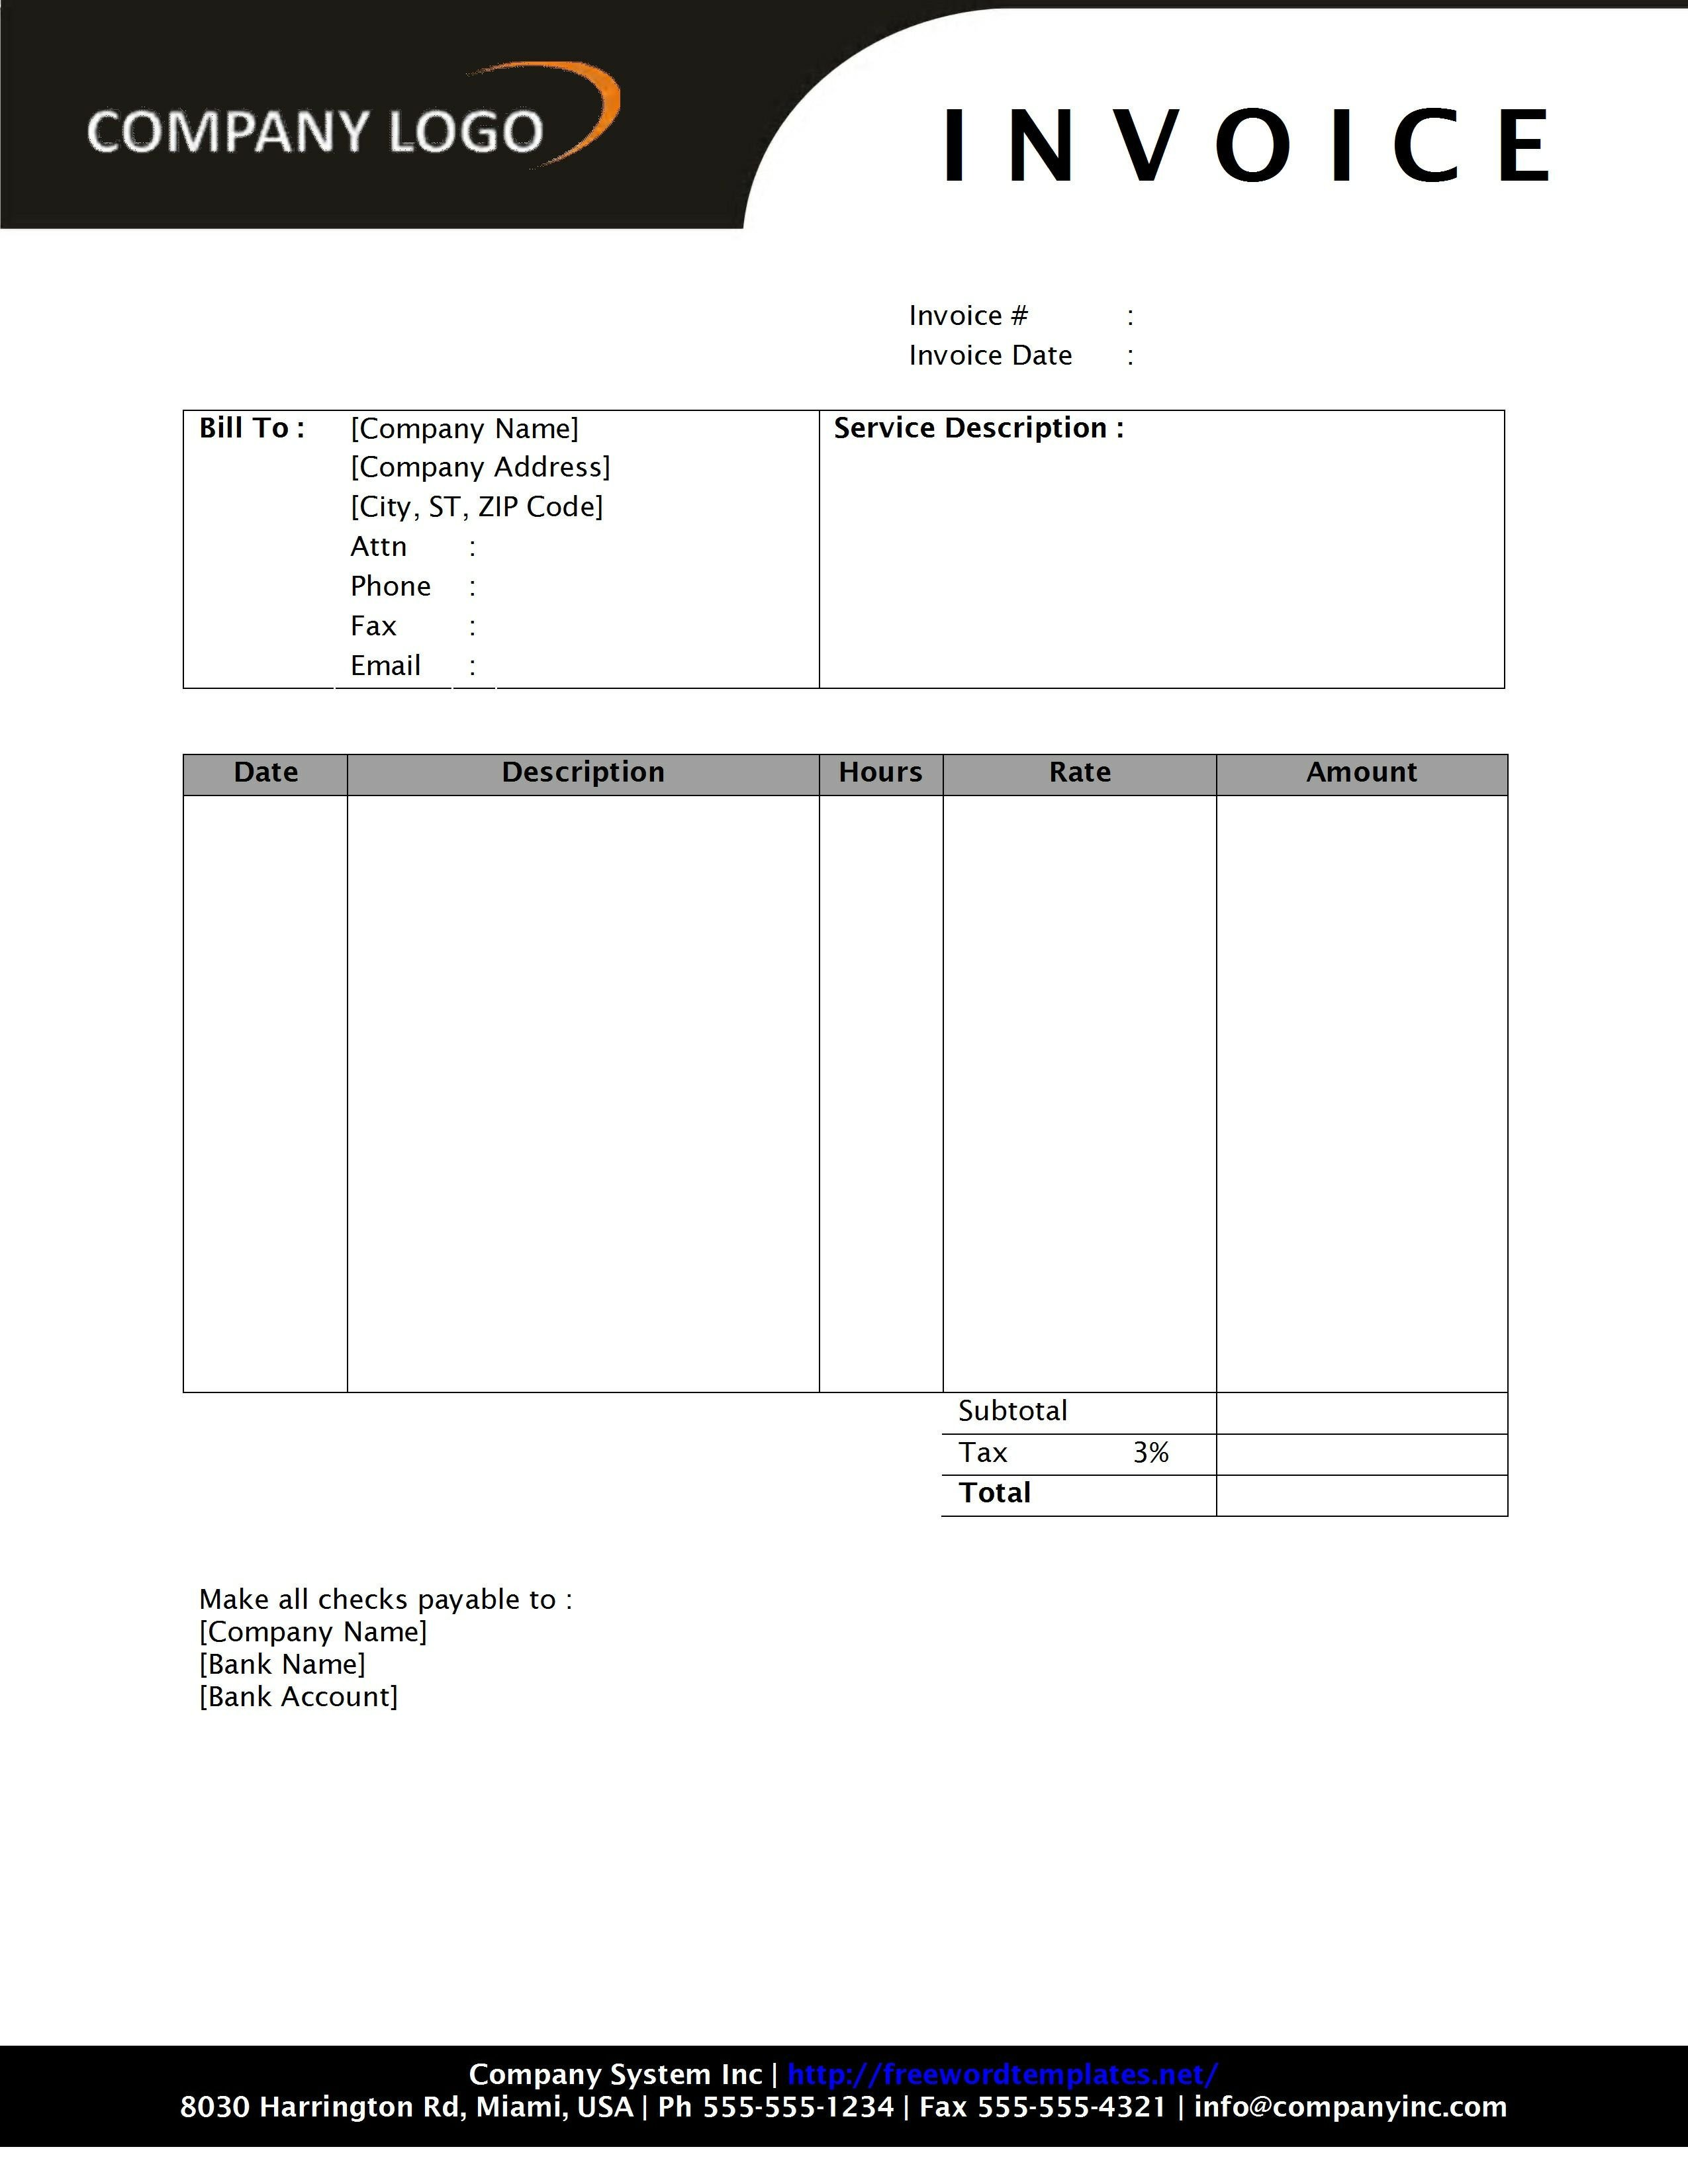 Microsoft Word Invoice Templates Invoice Template Word 2010